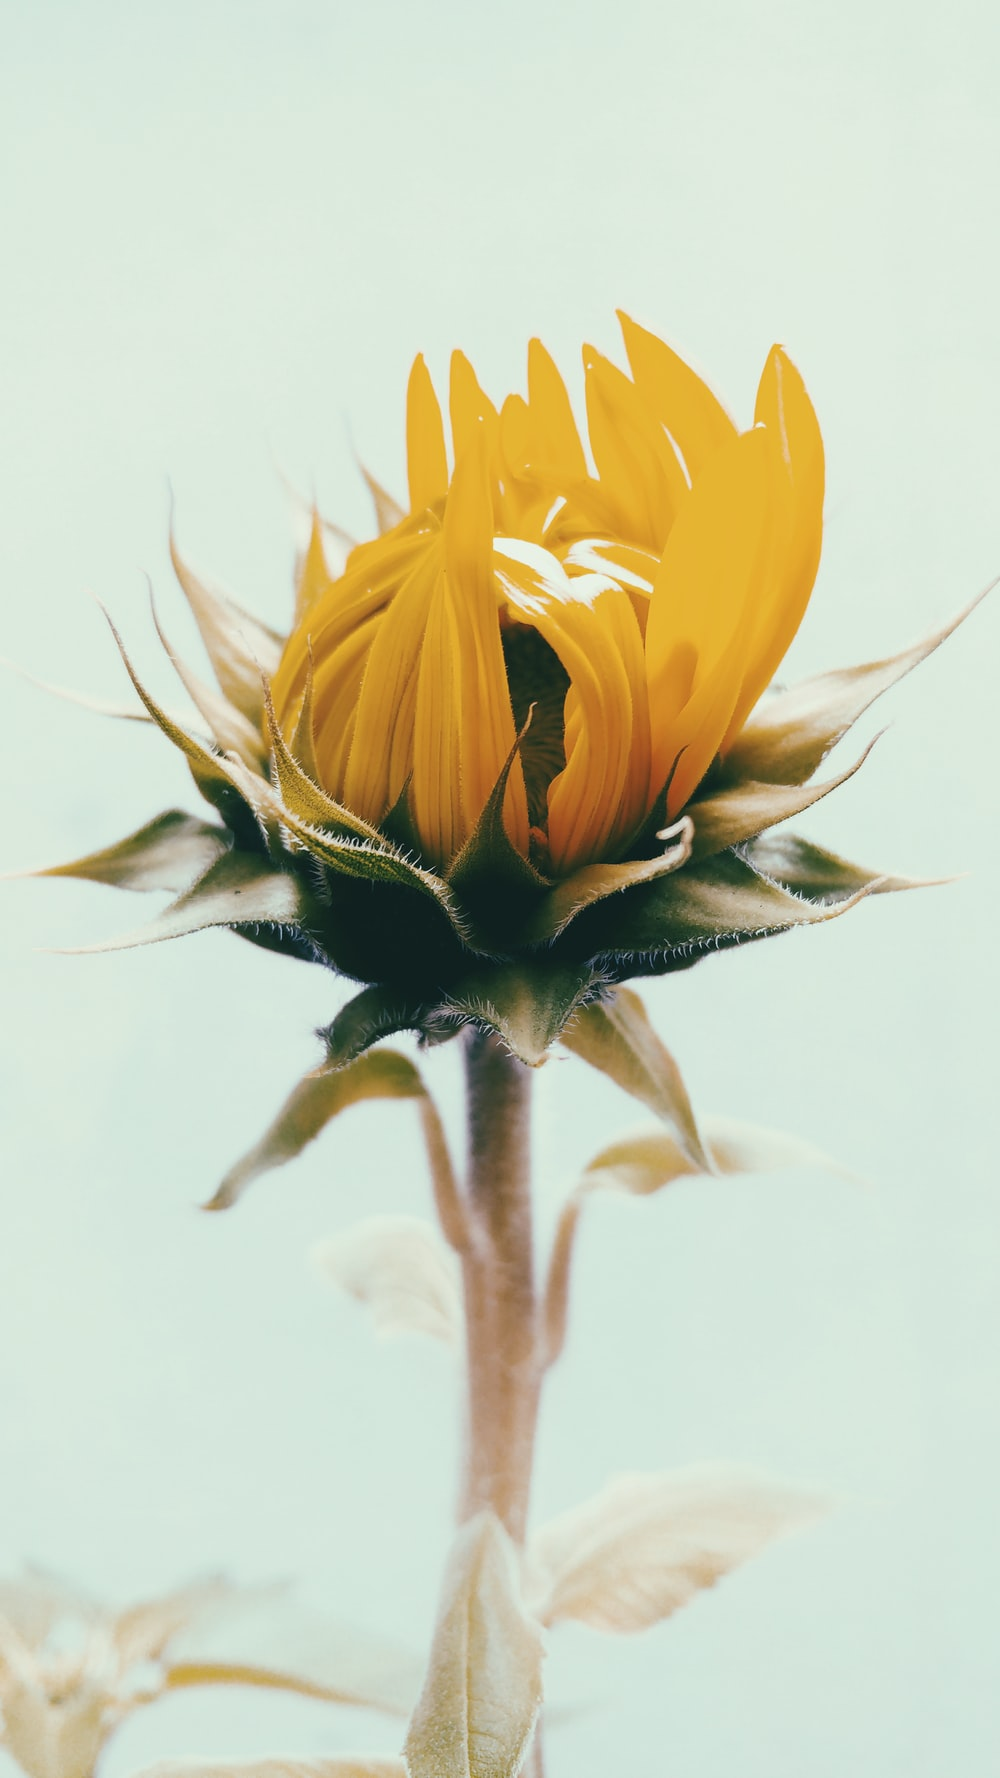 shallow focus photography of yellow sunflower